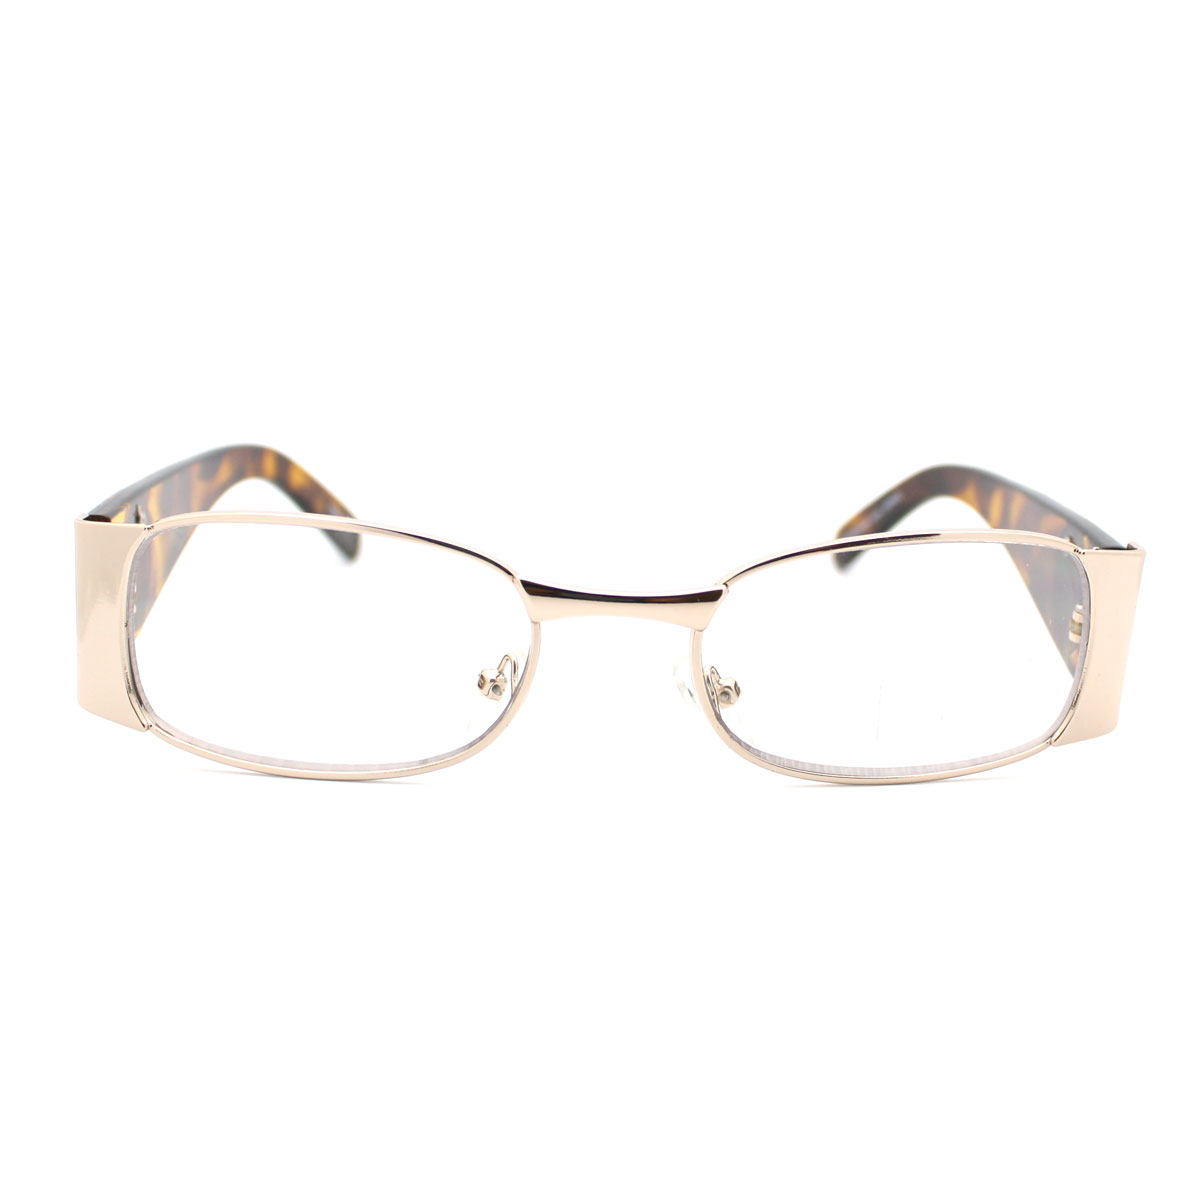 Glasses Without Frame On Bottom : Womens Clear Oval Lens Eye Glasses Frame Tort Temple w ...